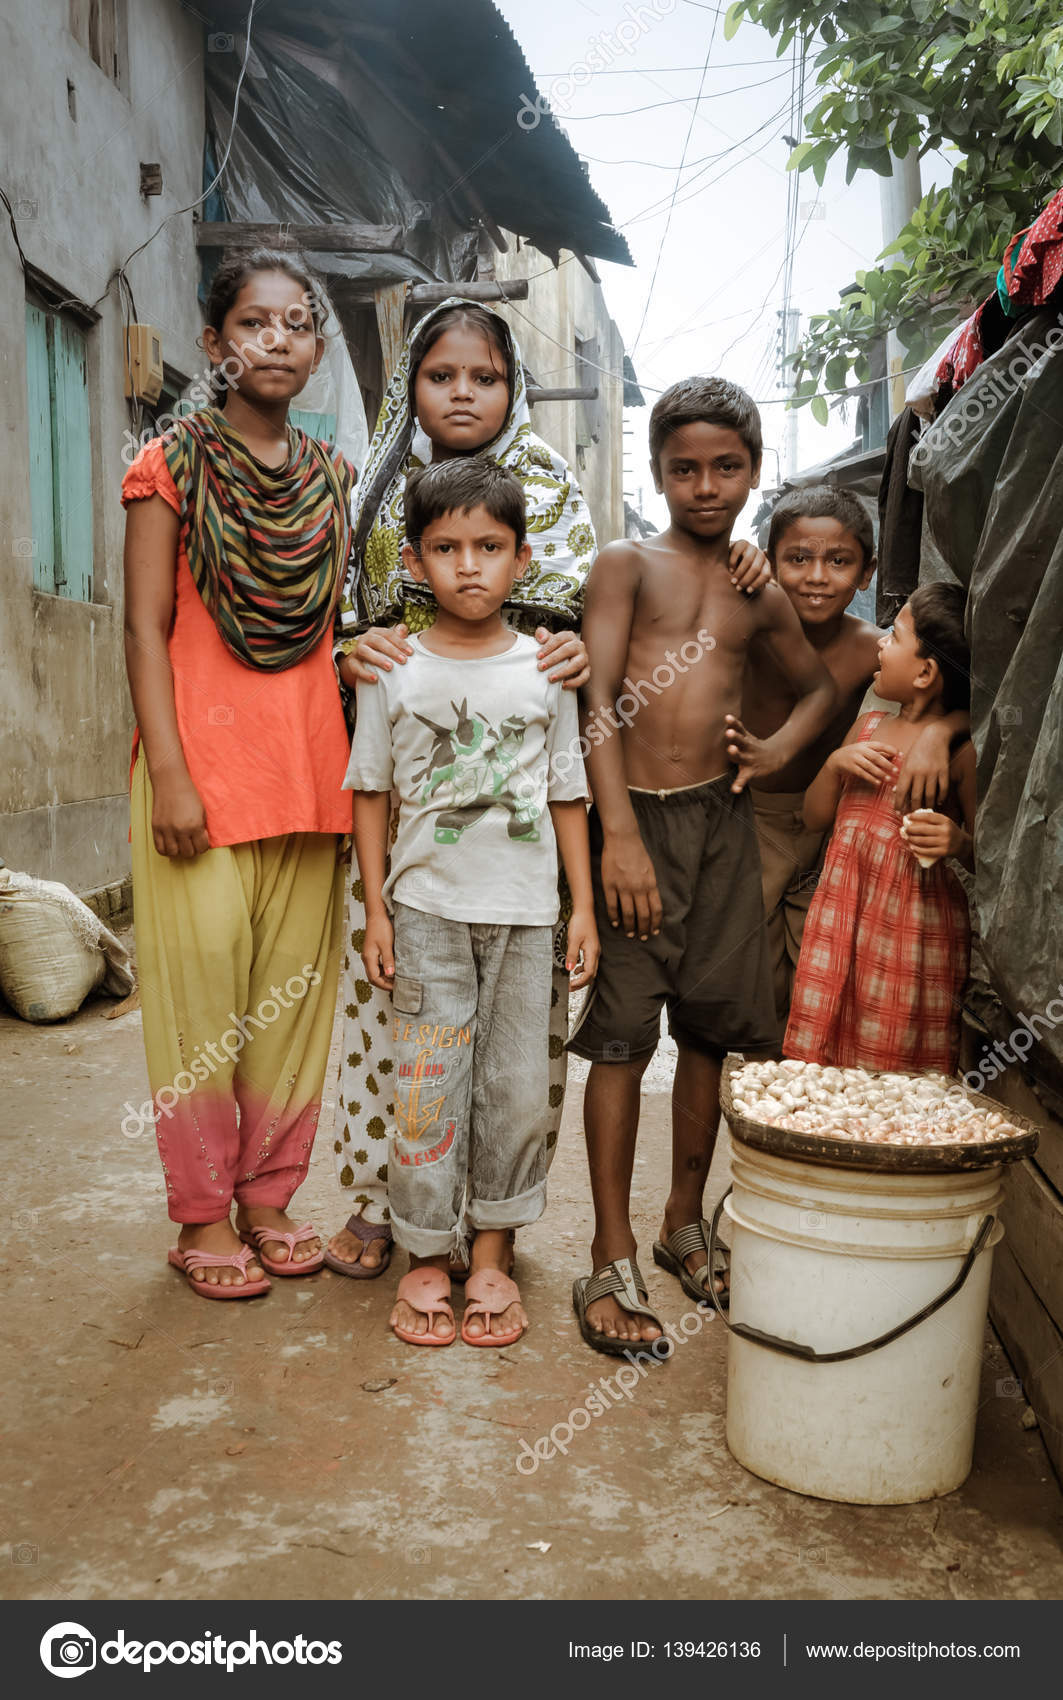 the invisible people in the slums Buy a cheap copy of the invisible people: poverty and book by cathleen jo faruque free shipping over $10 dr samad has authored and edited many books in the fields of social science and development.